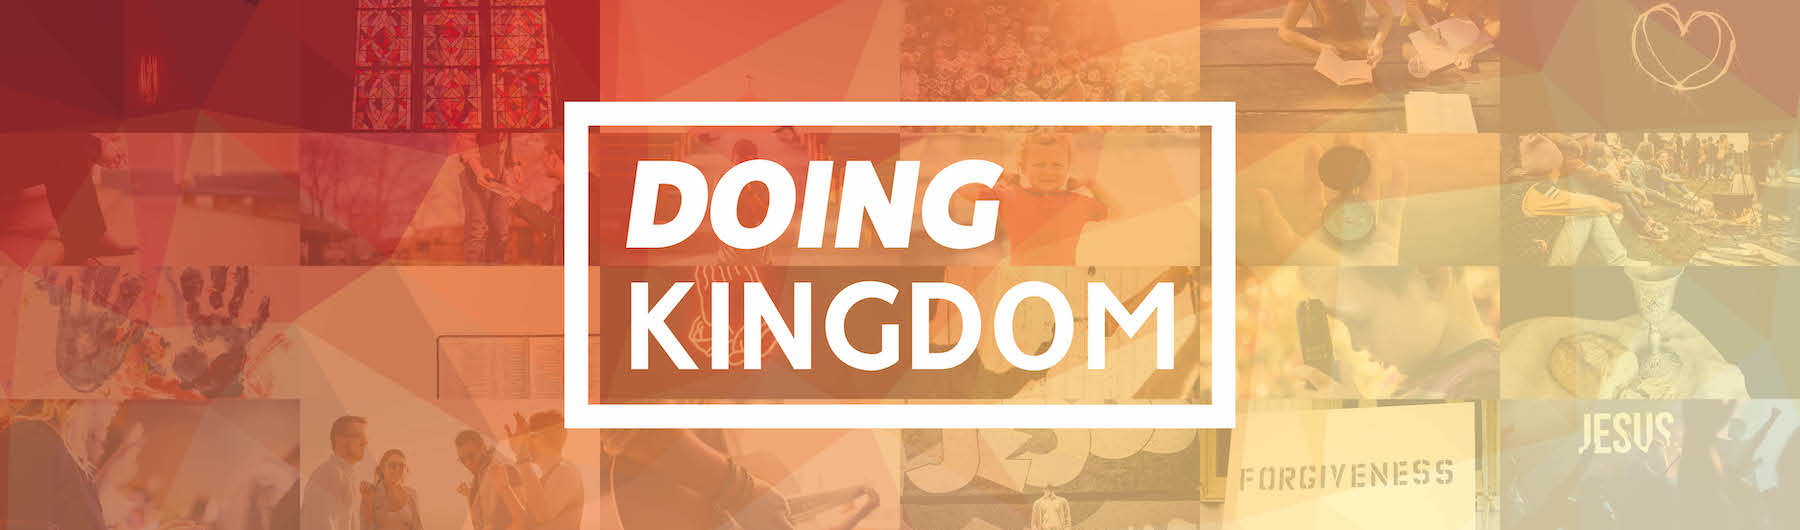 Doing Kingdom Conference Plymouth Vineyard